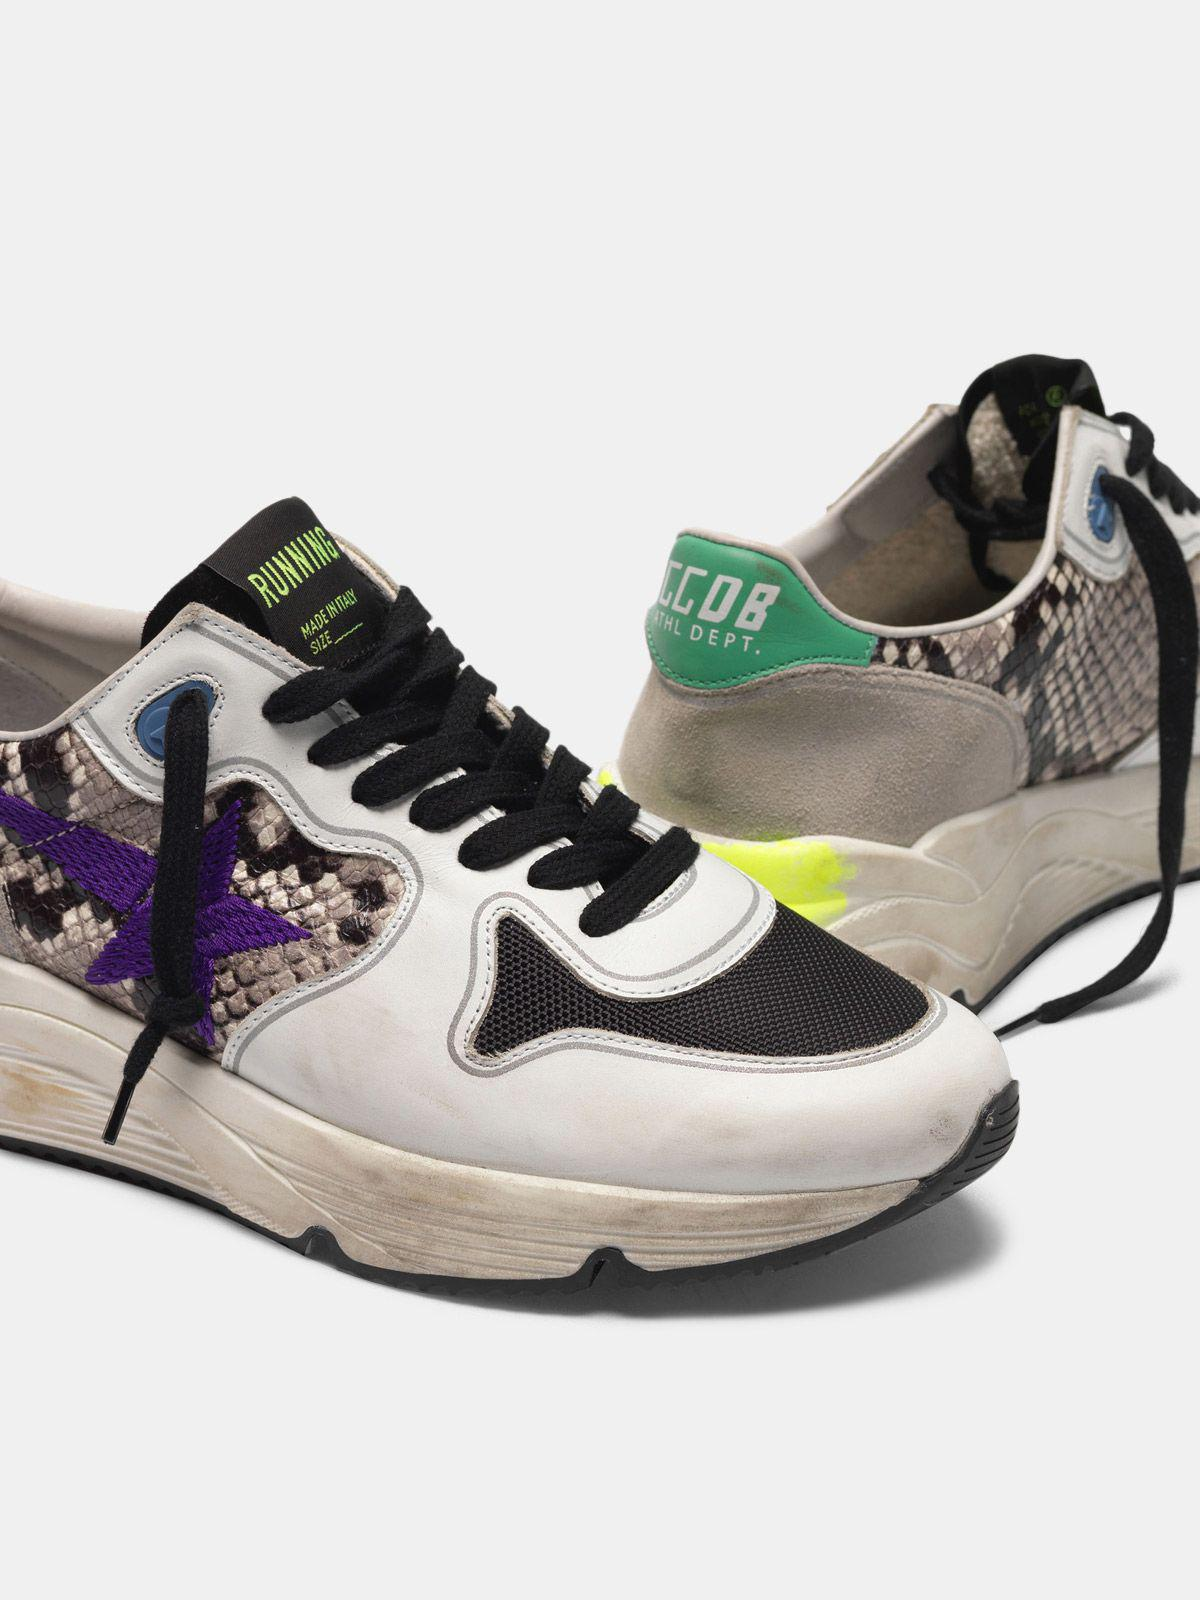 Running Sole sneakers in snakeskin print leather with purple embroidered star 3